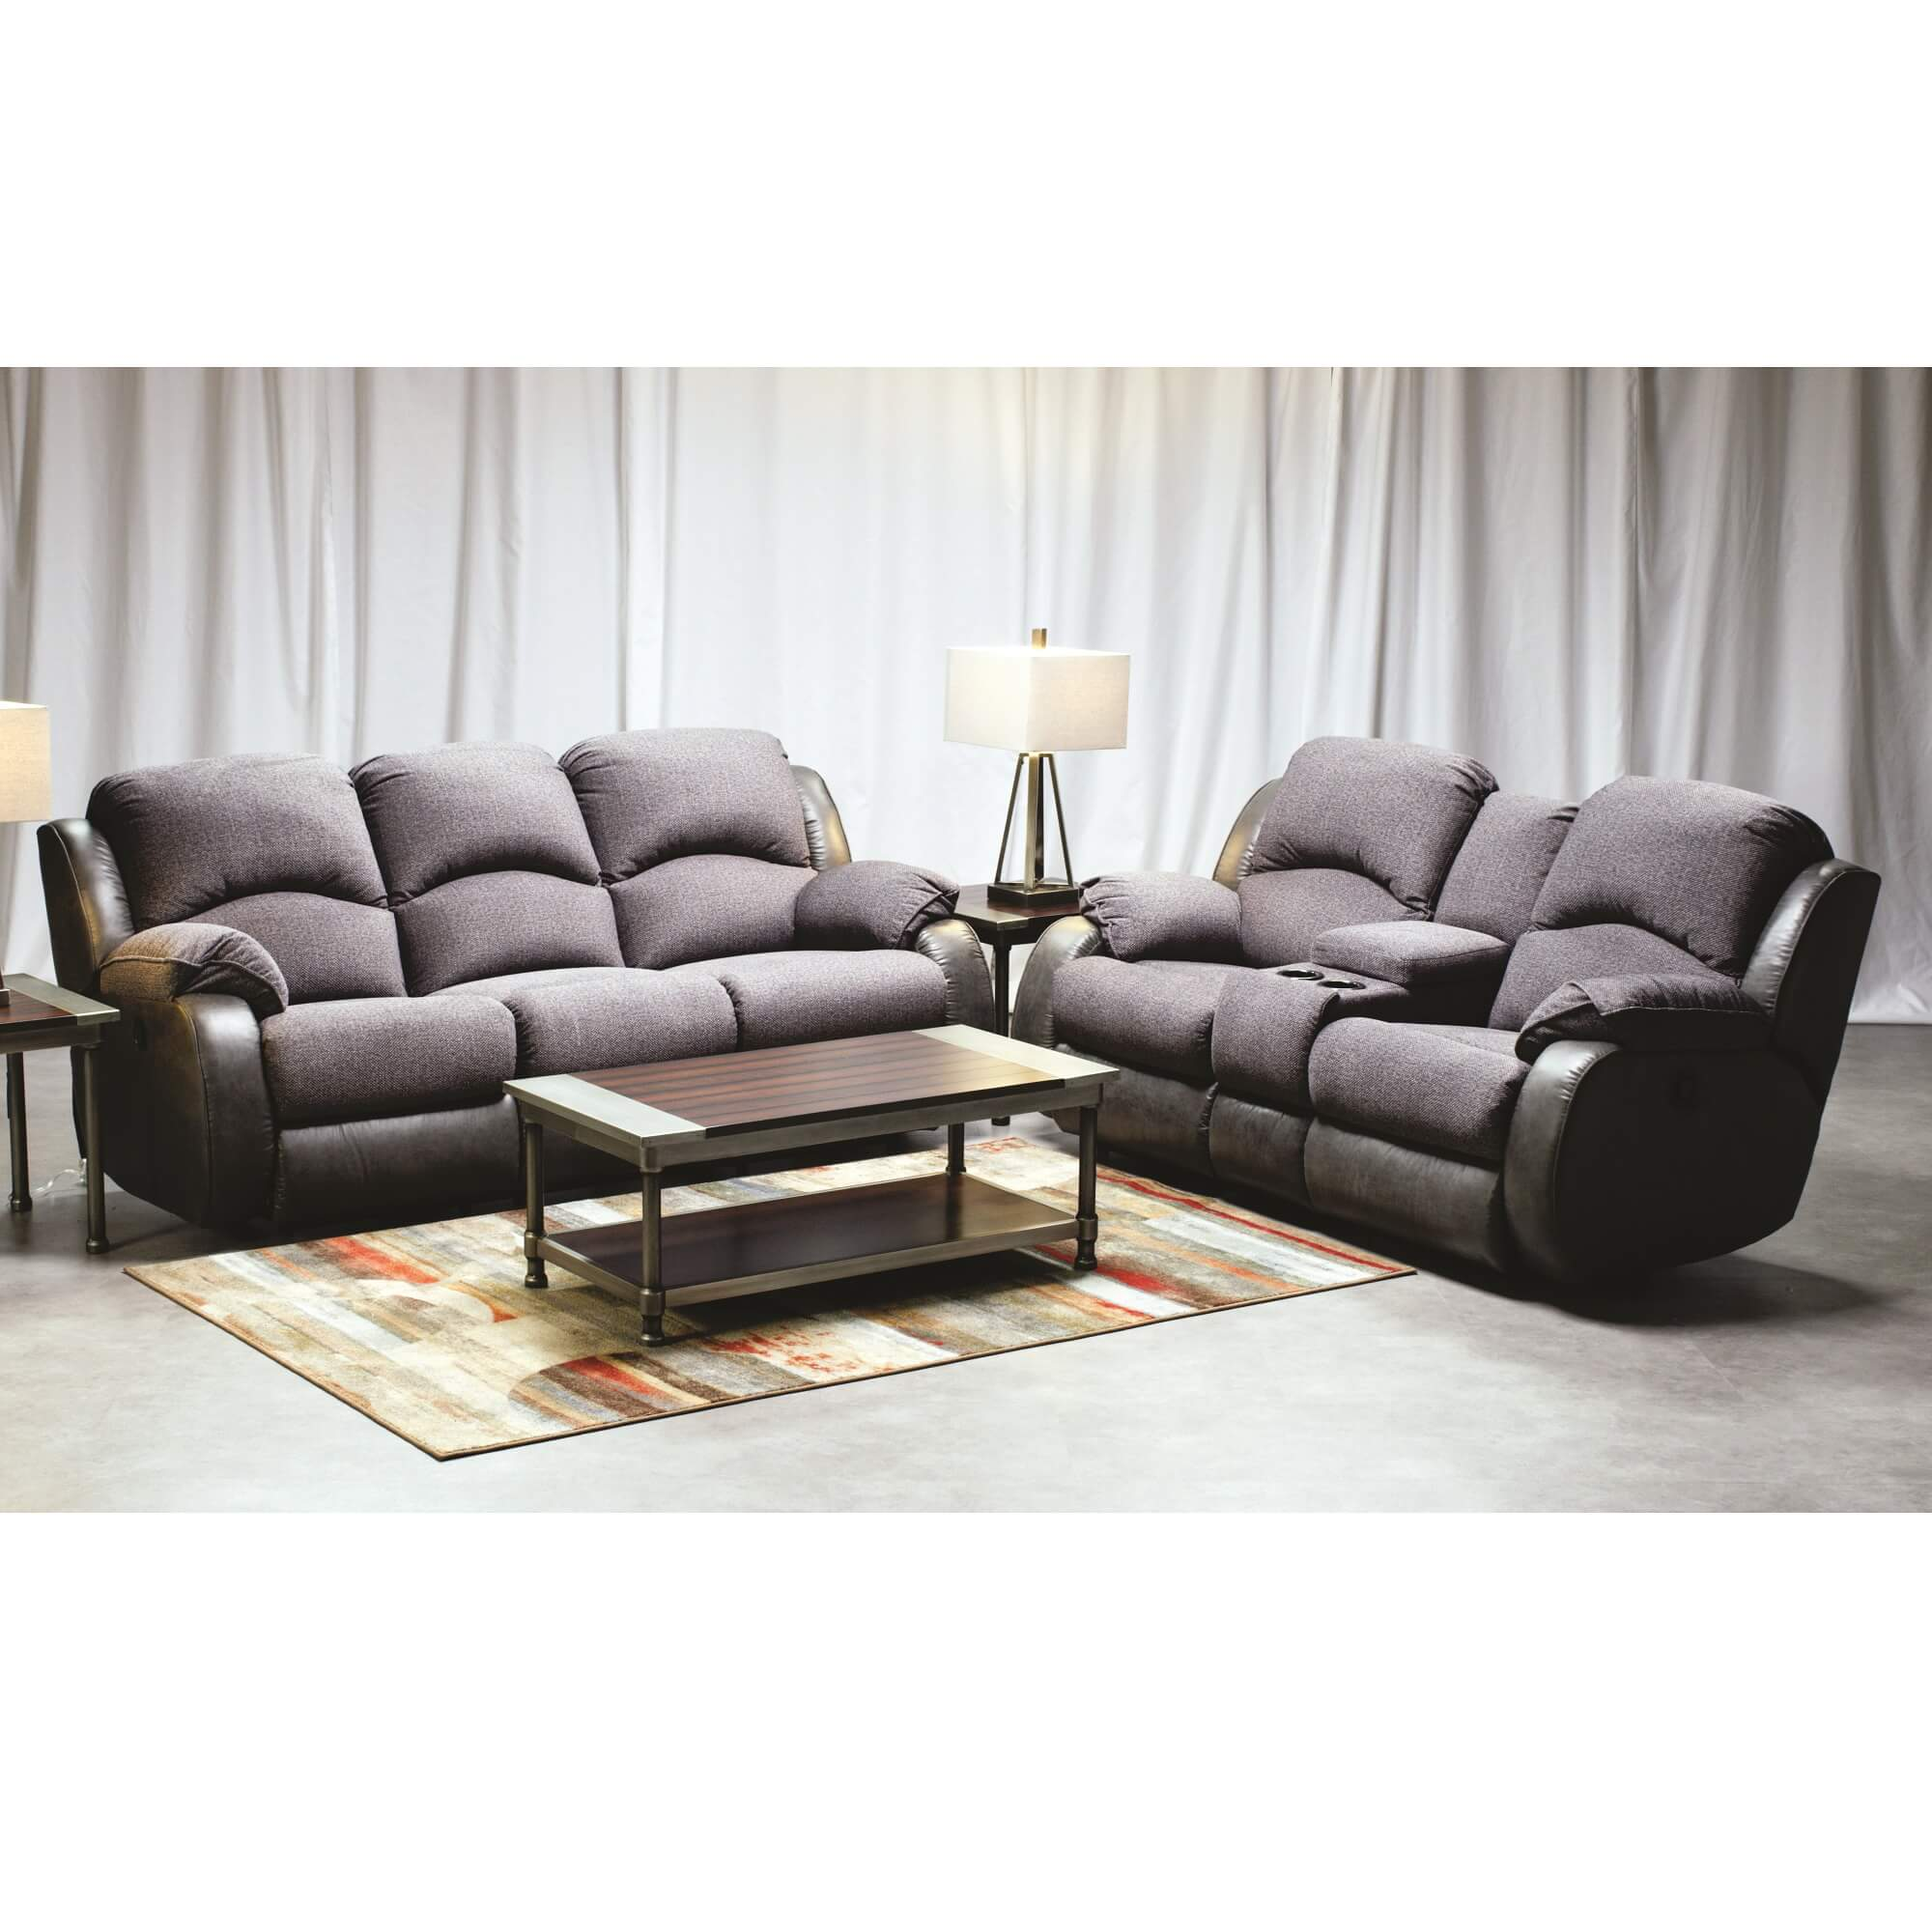 Rent To Own Woodhaven 2 Piece Montana Reclining Sofa Loveseat At Aaron S Today